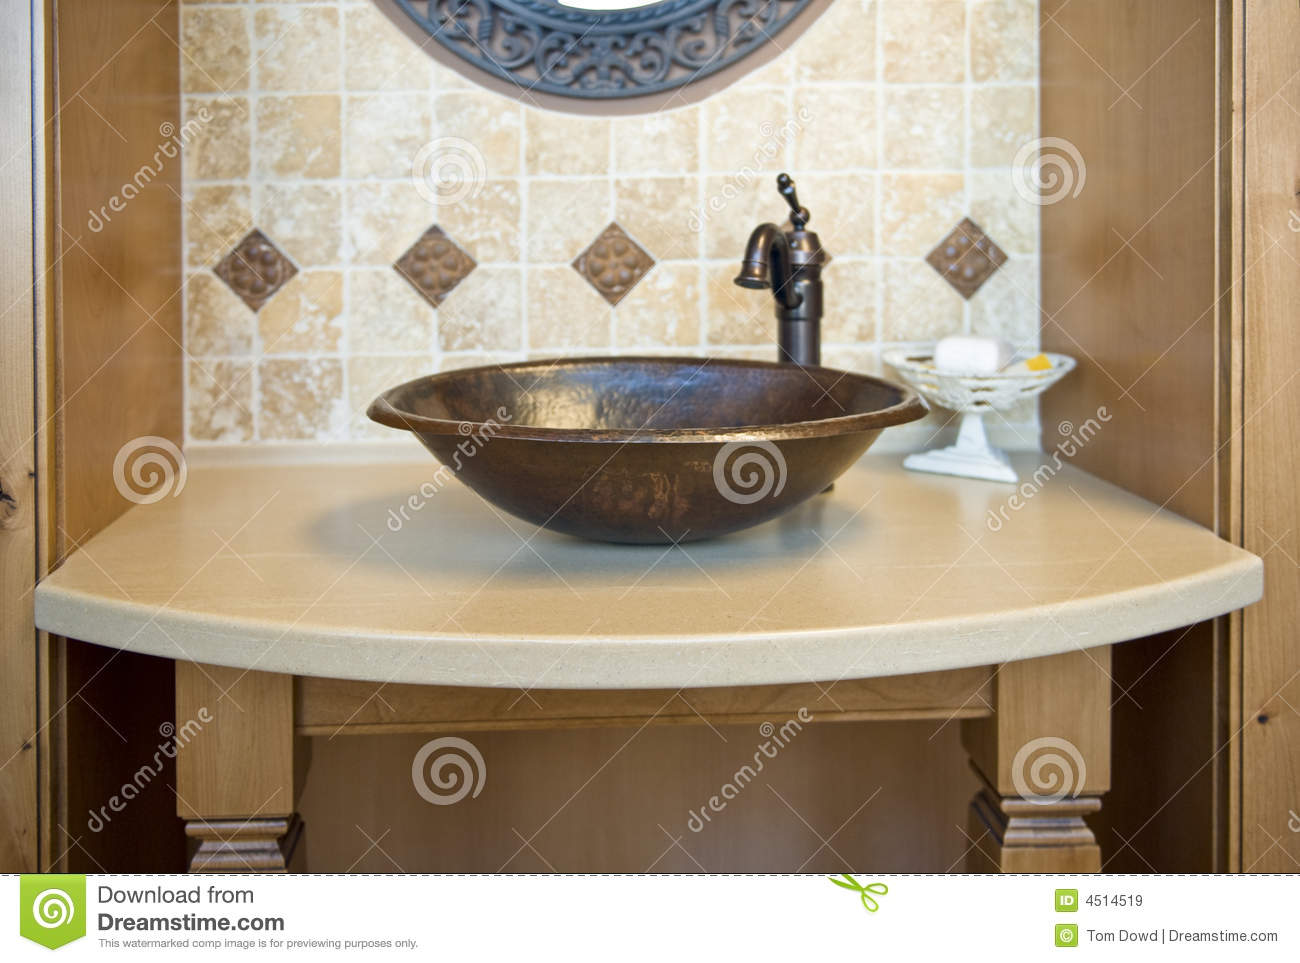 decorated bathroom sinks decorative bathroom sink stock image image of inside 12635